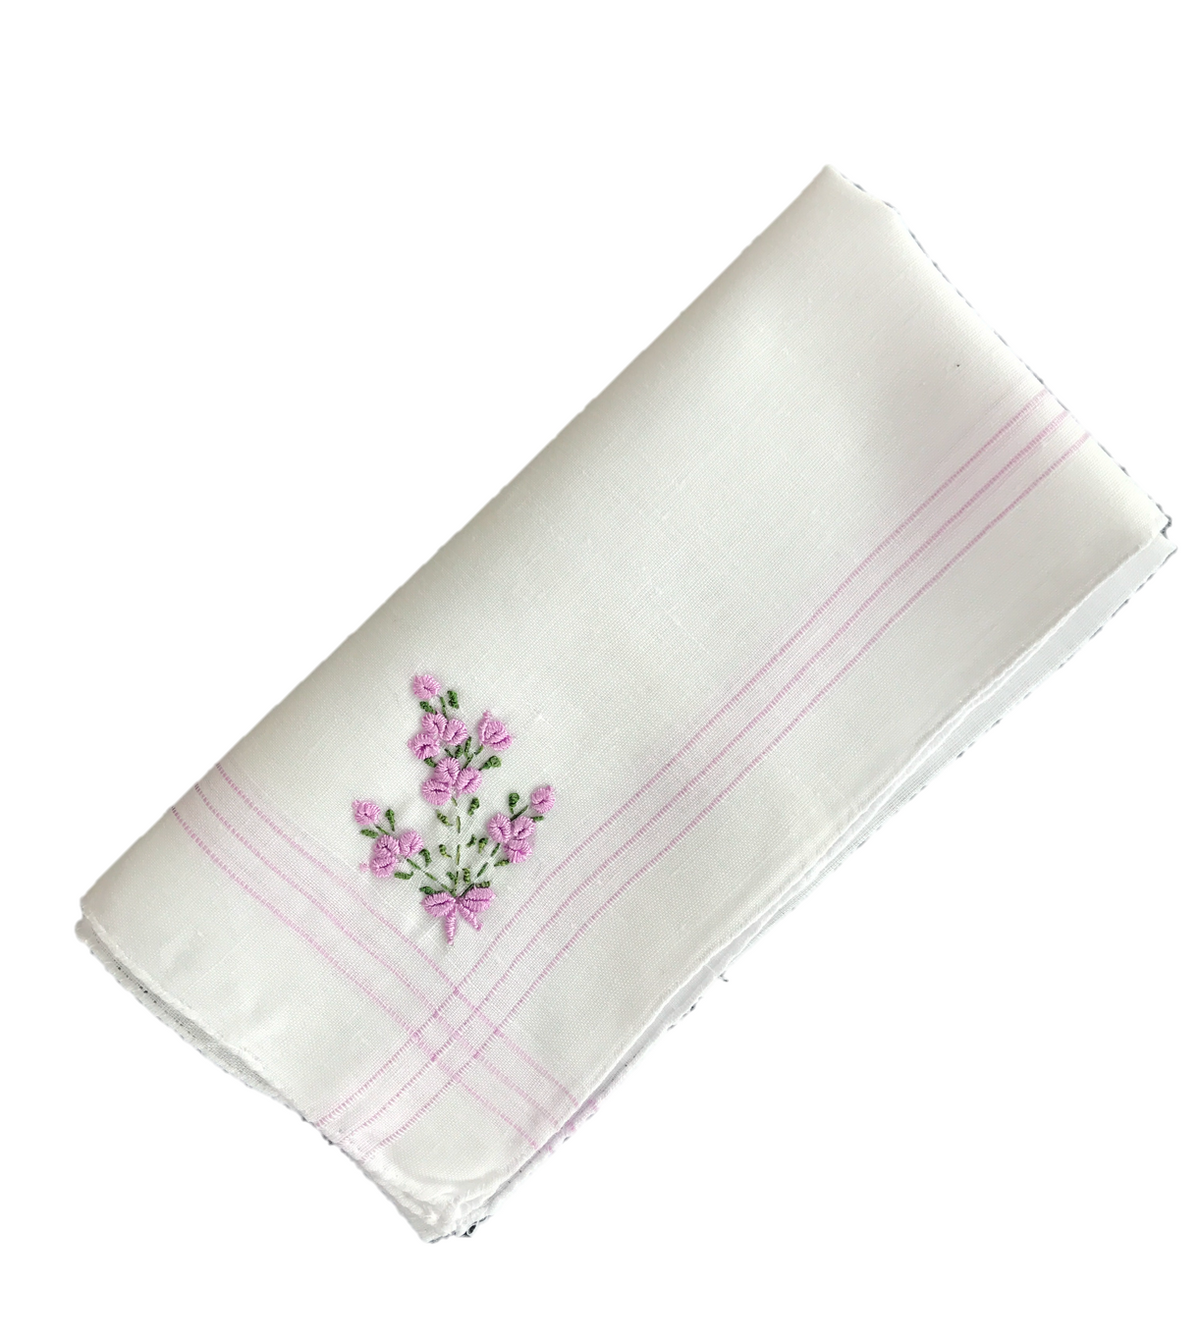 Colorful Handkerchief Collection: Lilac with Flowers